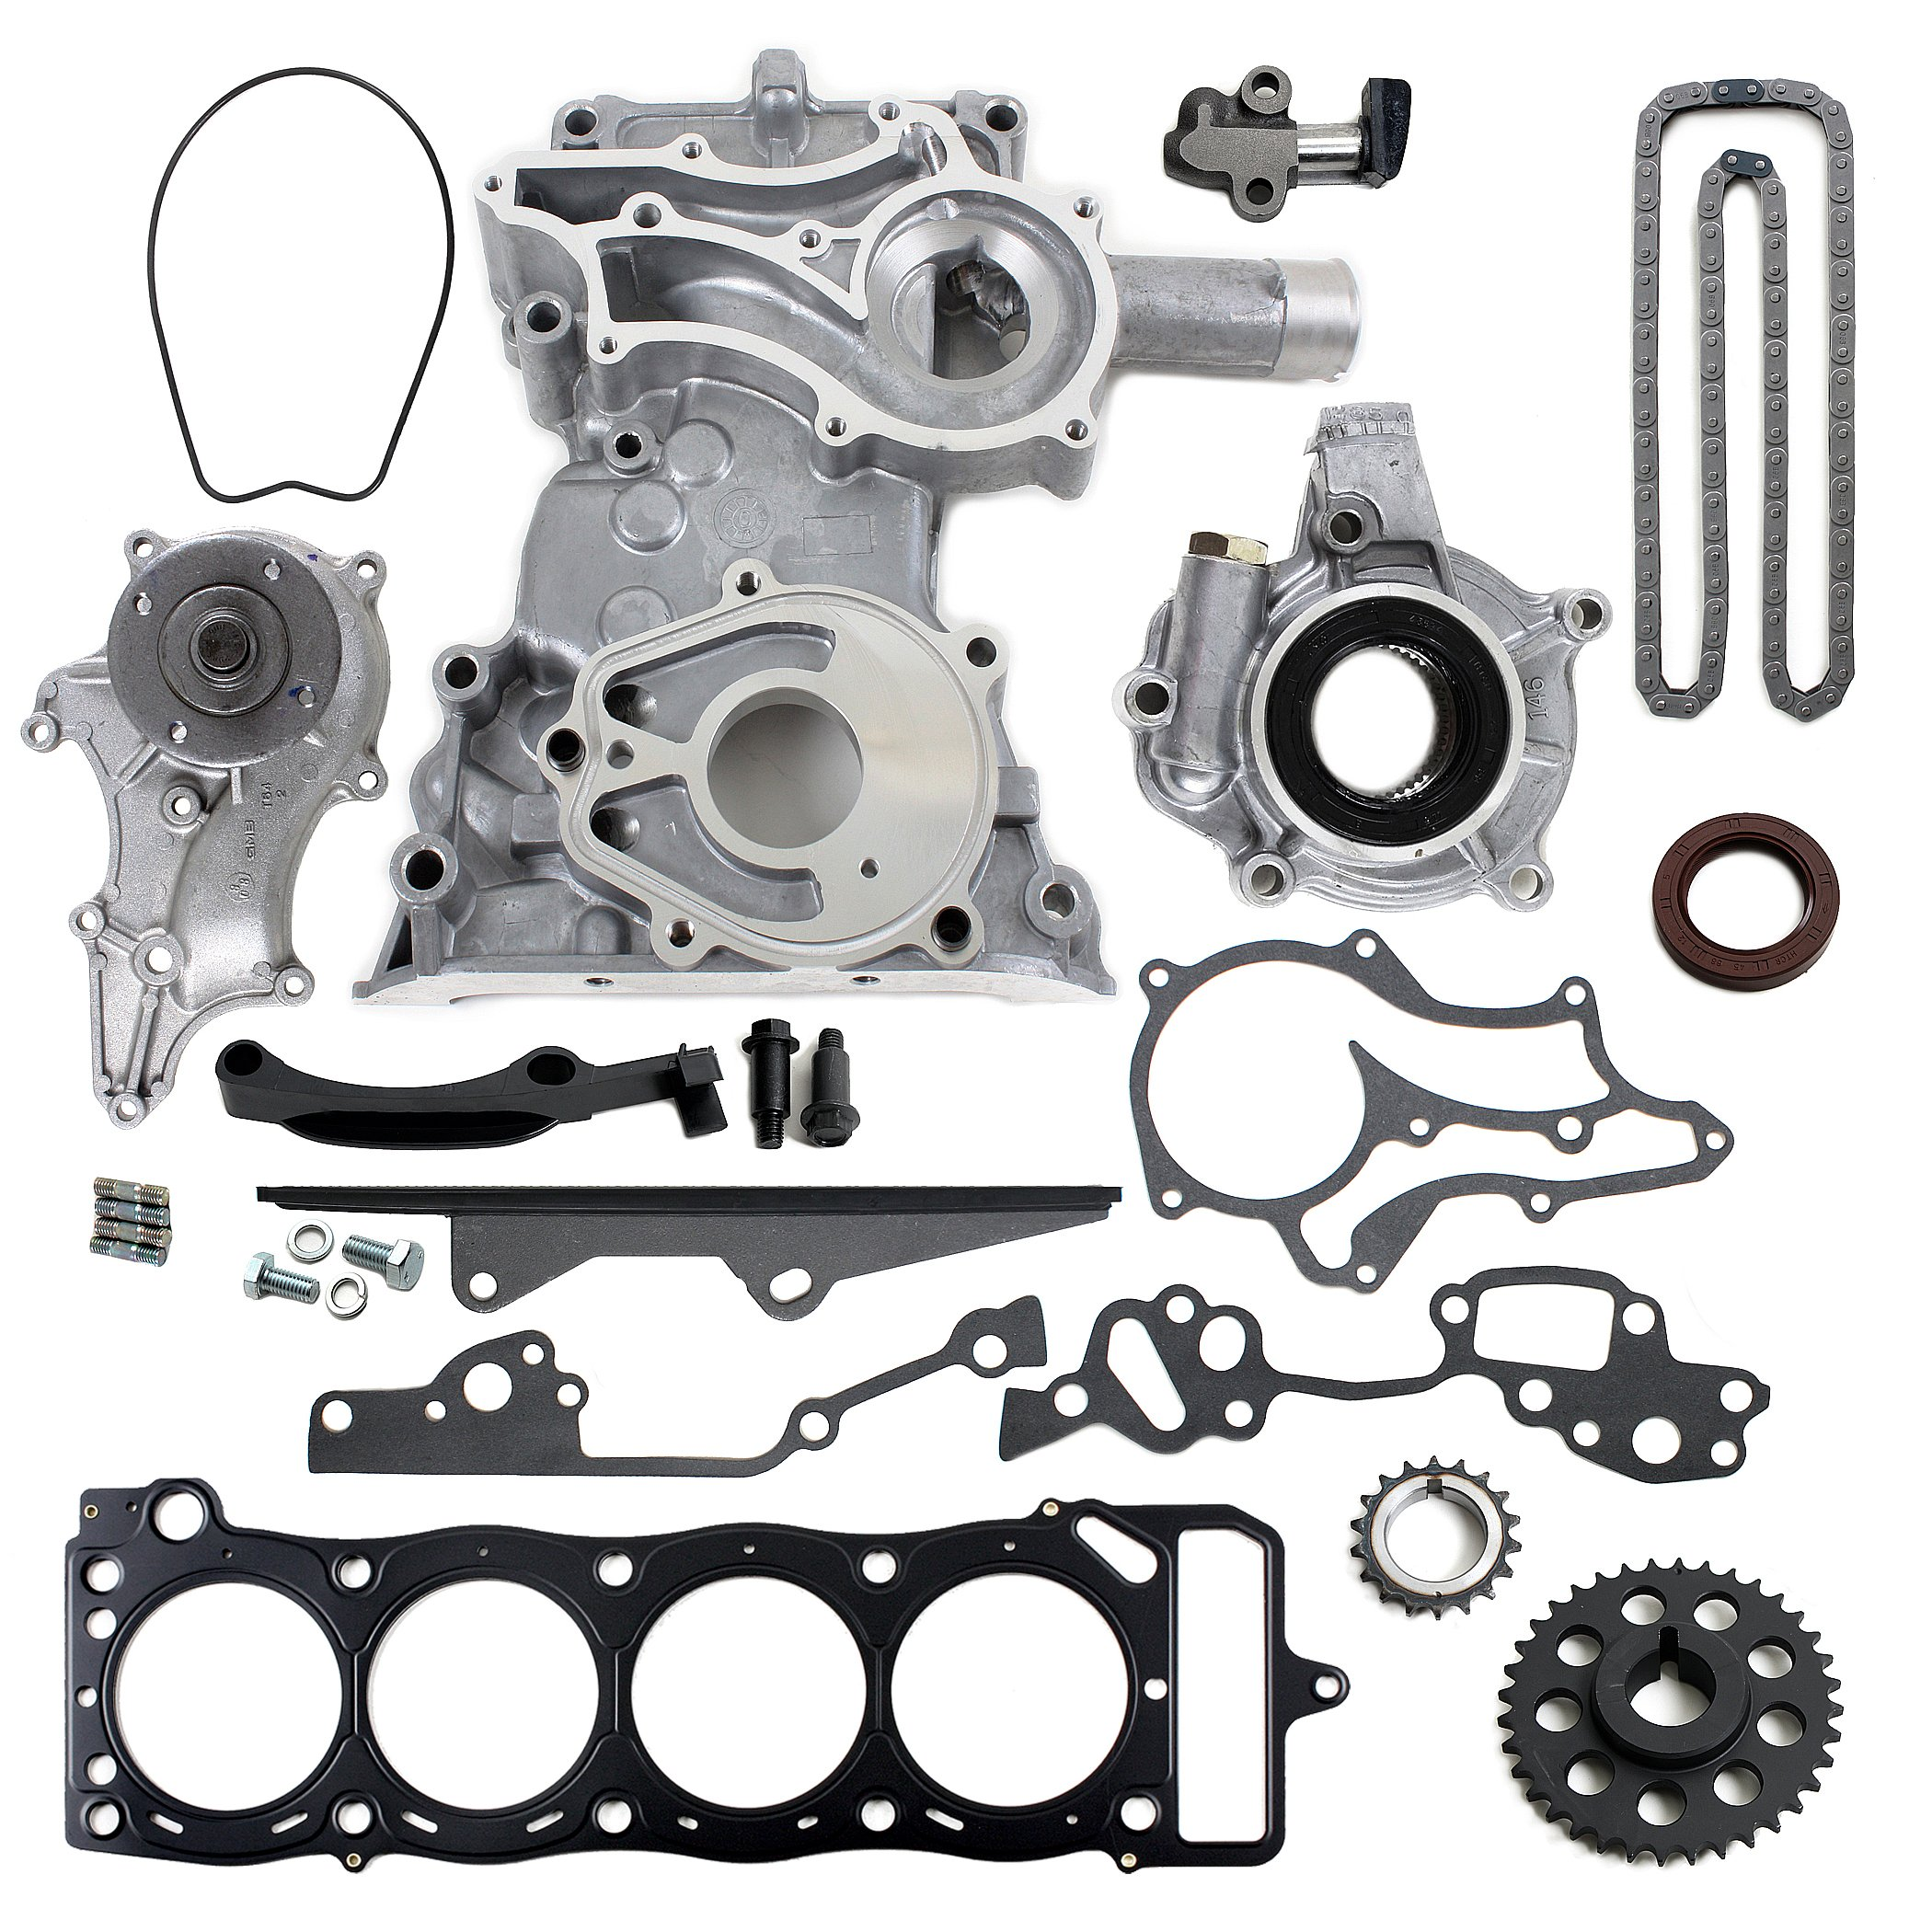 NEW TK2060TCWPOPHG Timing Chain Kit (1 Heavy Duty Metal Straight Guide) with Timing Cover, Water Pump, & Multiple Layer Steel Head Gasket / 85-95 Toyota 2.4L 4Runner Pickup Celica Engine 22RE 22REC by CNS EngineParts